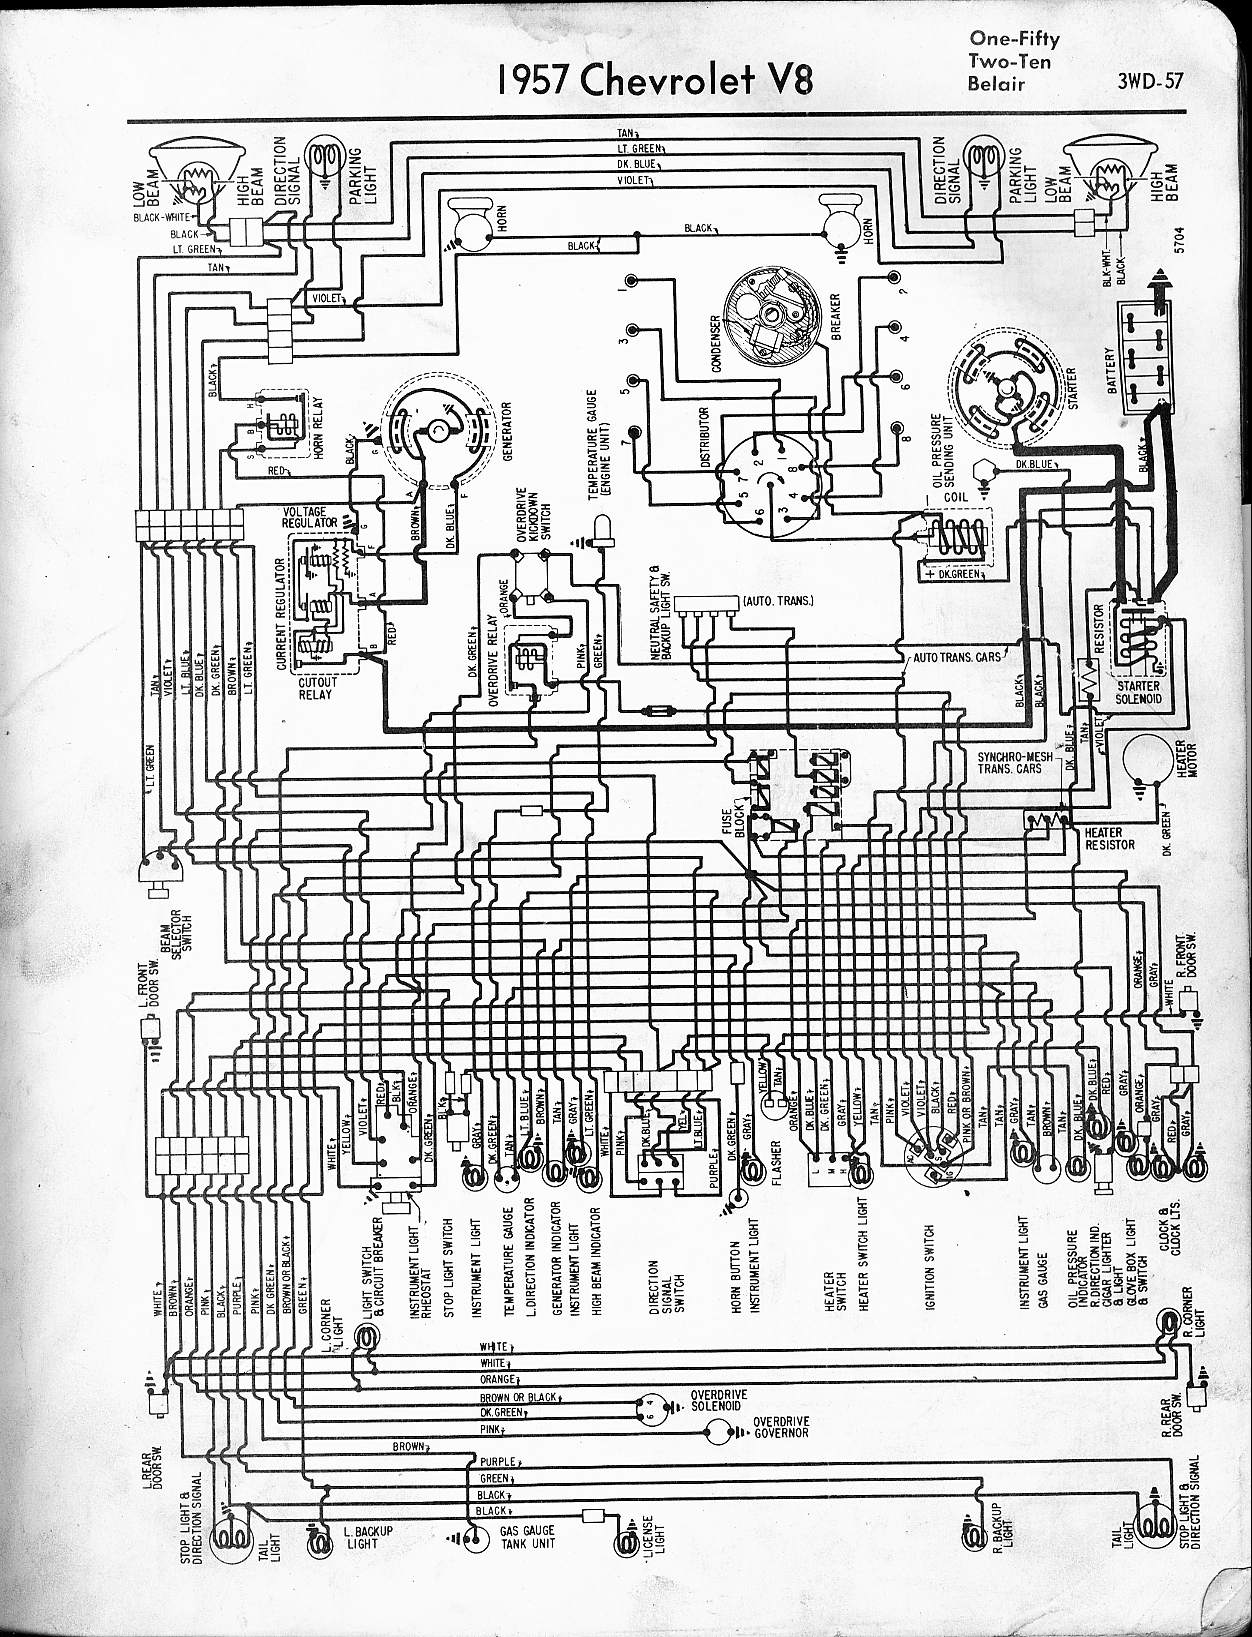 57 65 chevy wiring diagrams rh oldcarmanualproject com 1957 chevrolet wiring diagram 1957 chevrolet wiring diagram